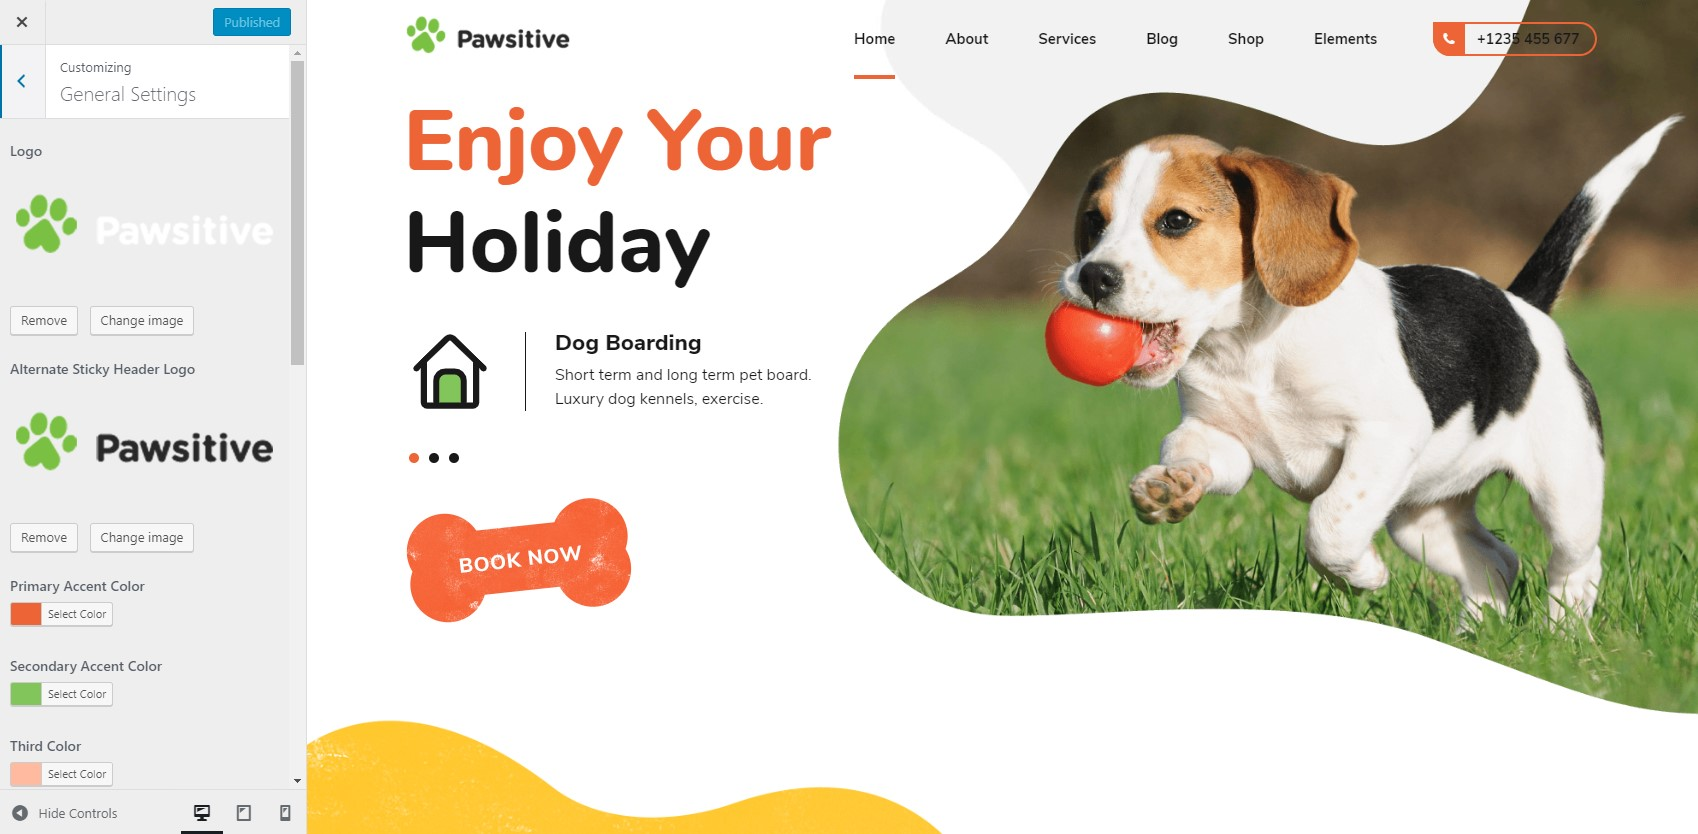 http://documentation.bold-themes.com/pawsitive/wp-content/uploads/sites/45/2019/08/general-settings.jpg